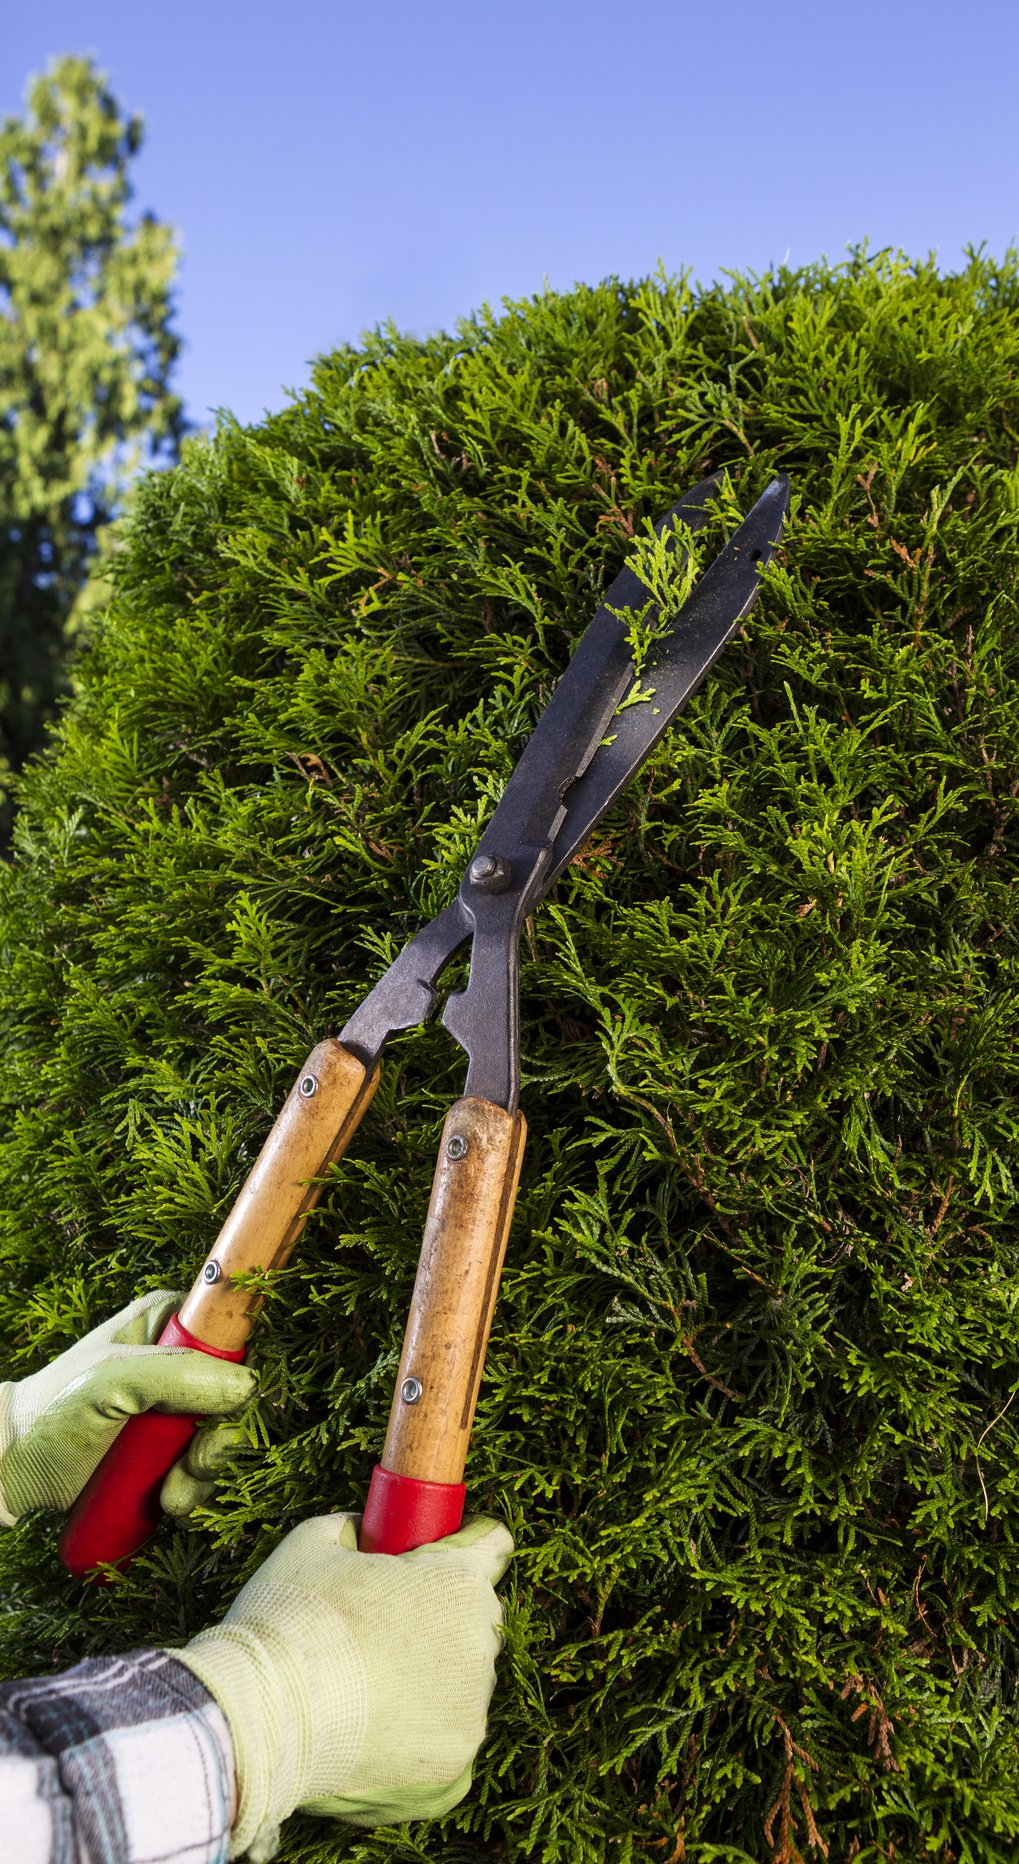 Hands Trimming the Hedges with Large Cutting Shears